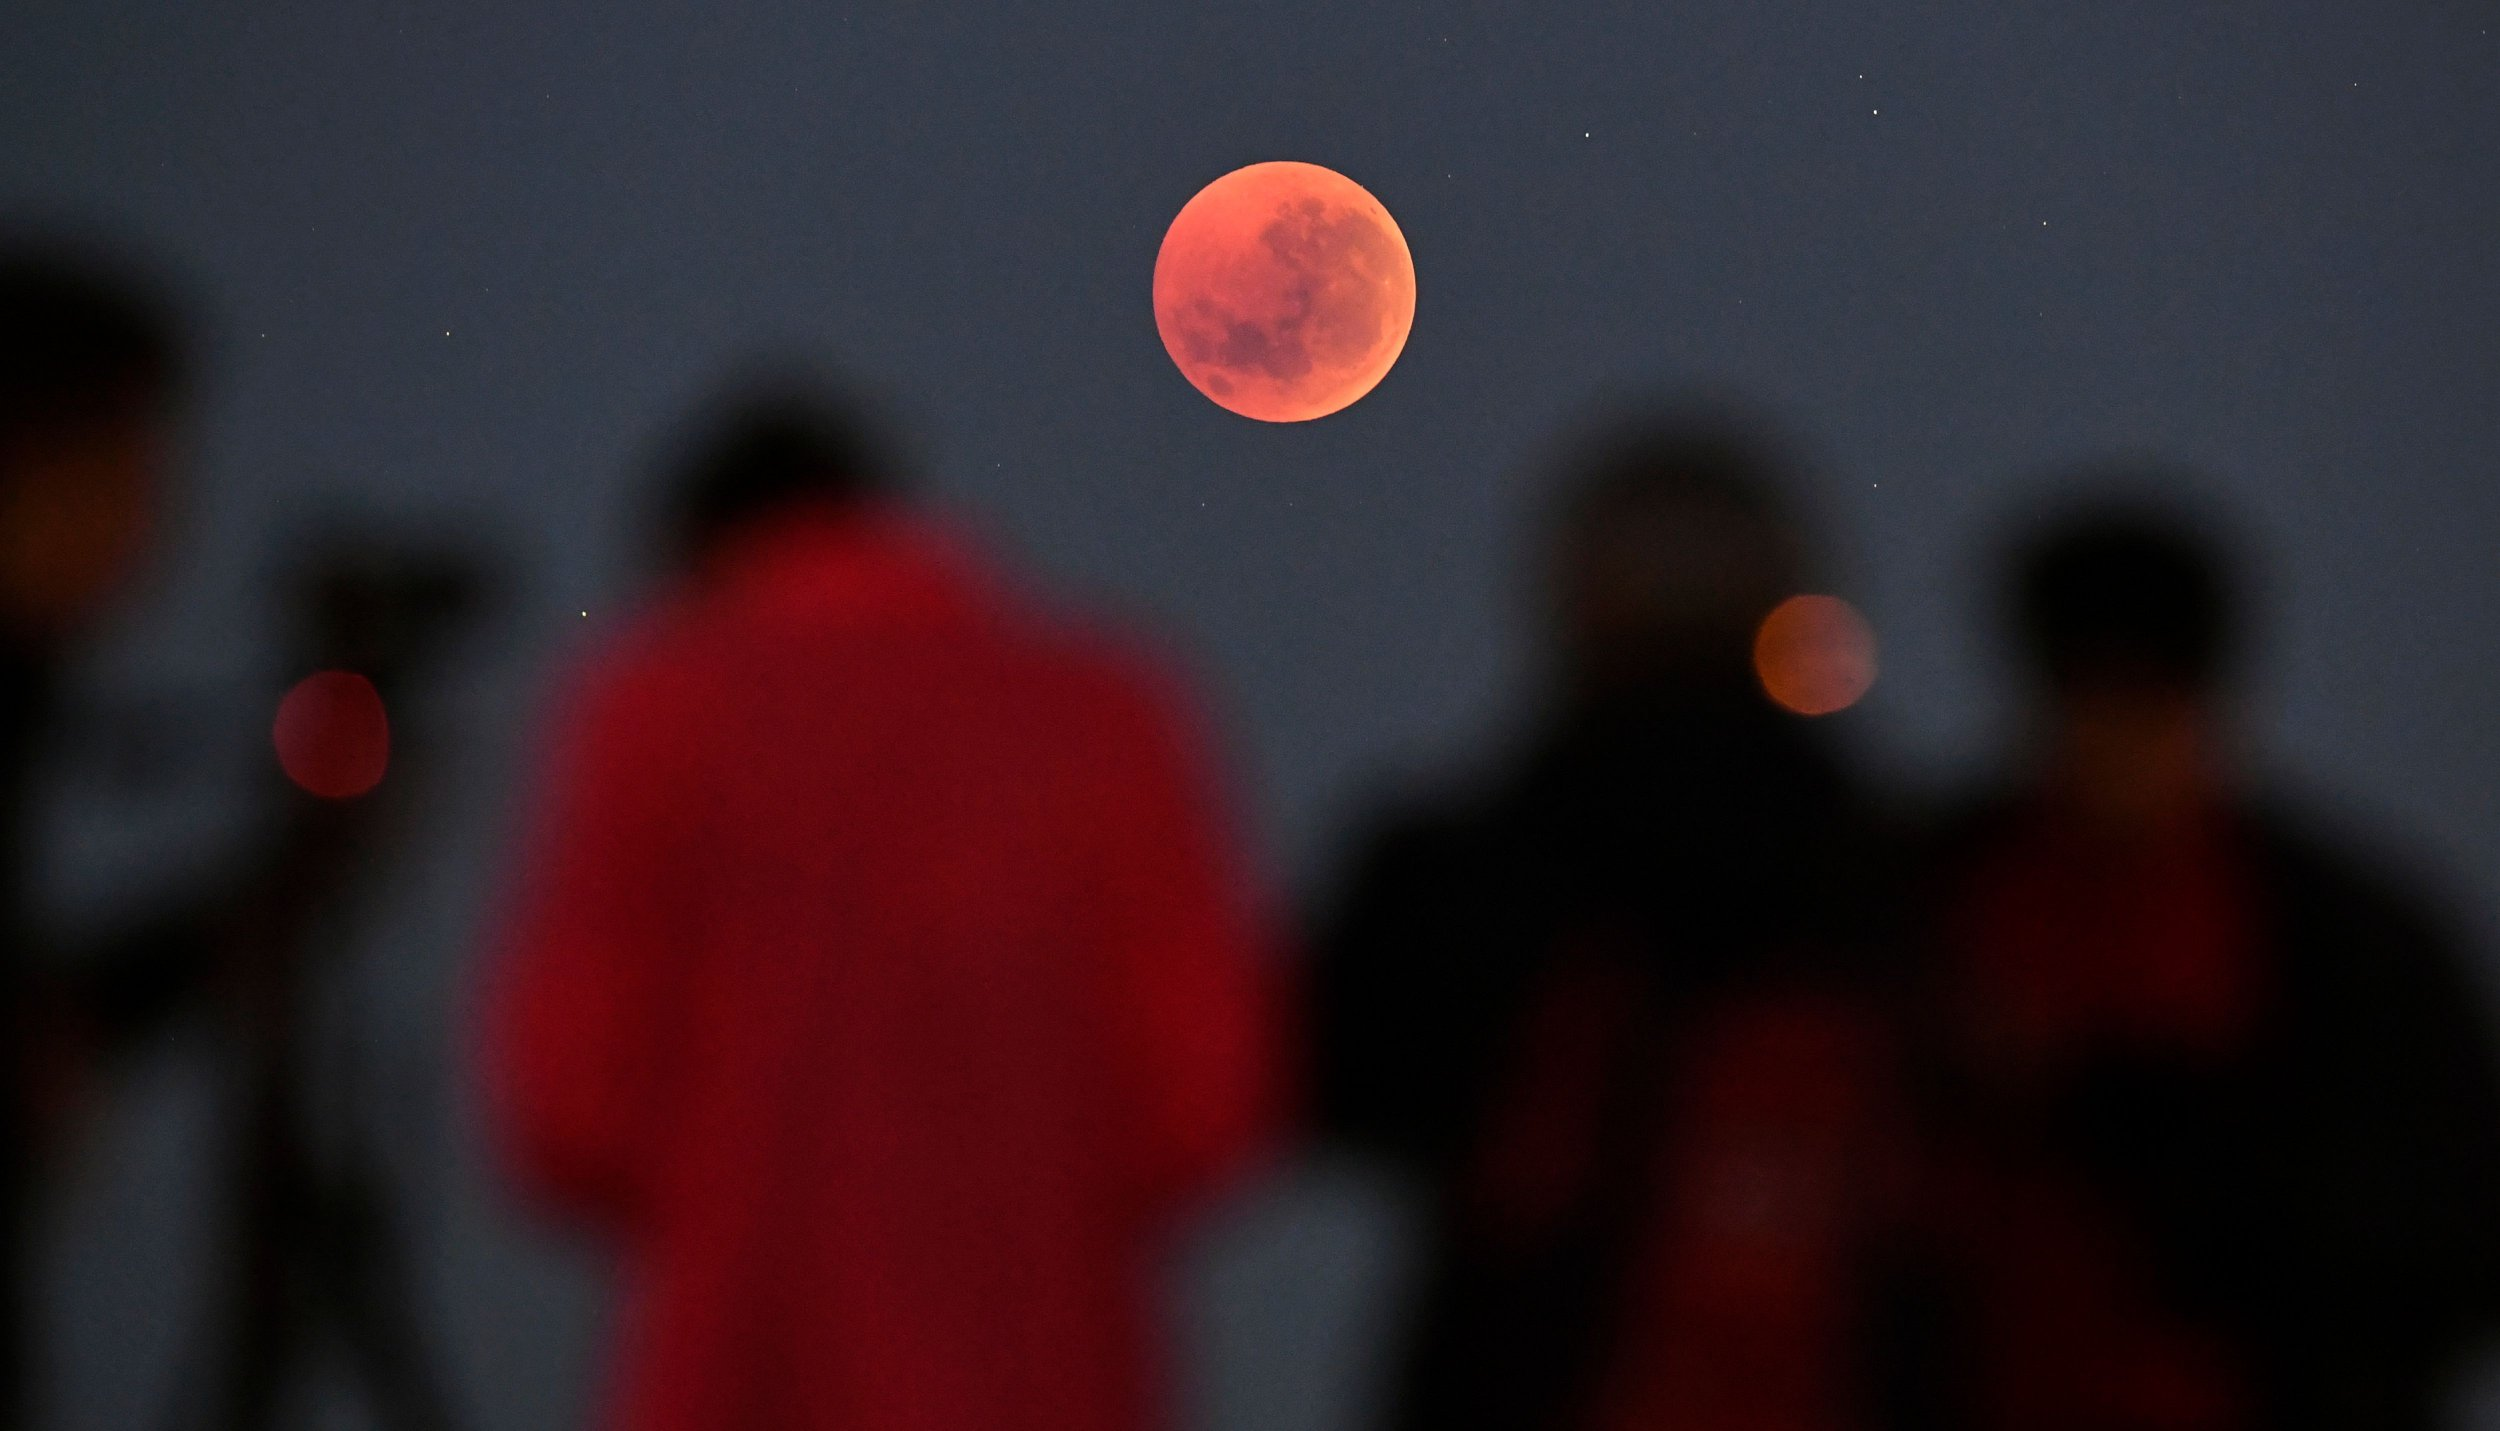 January's super wolf blood moon will be the last total lunar eclipse until 2021